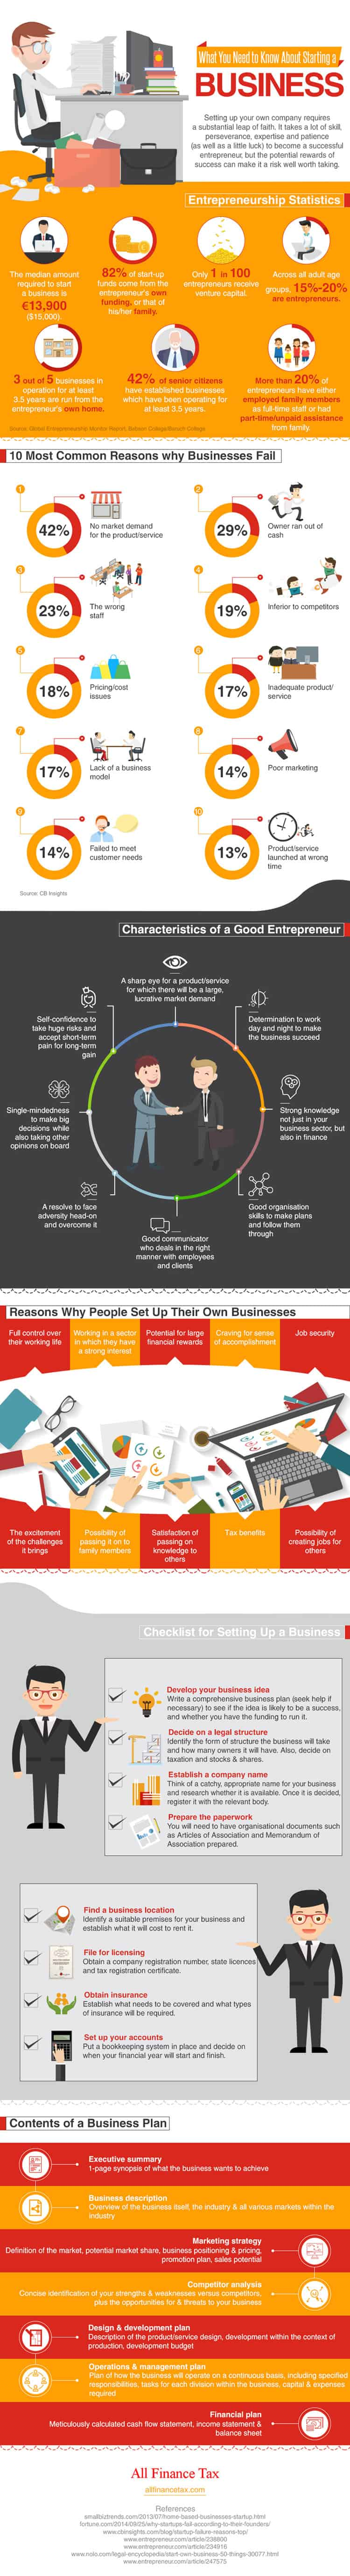 What You Need To Know About Starting a Business – Infographic